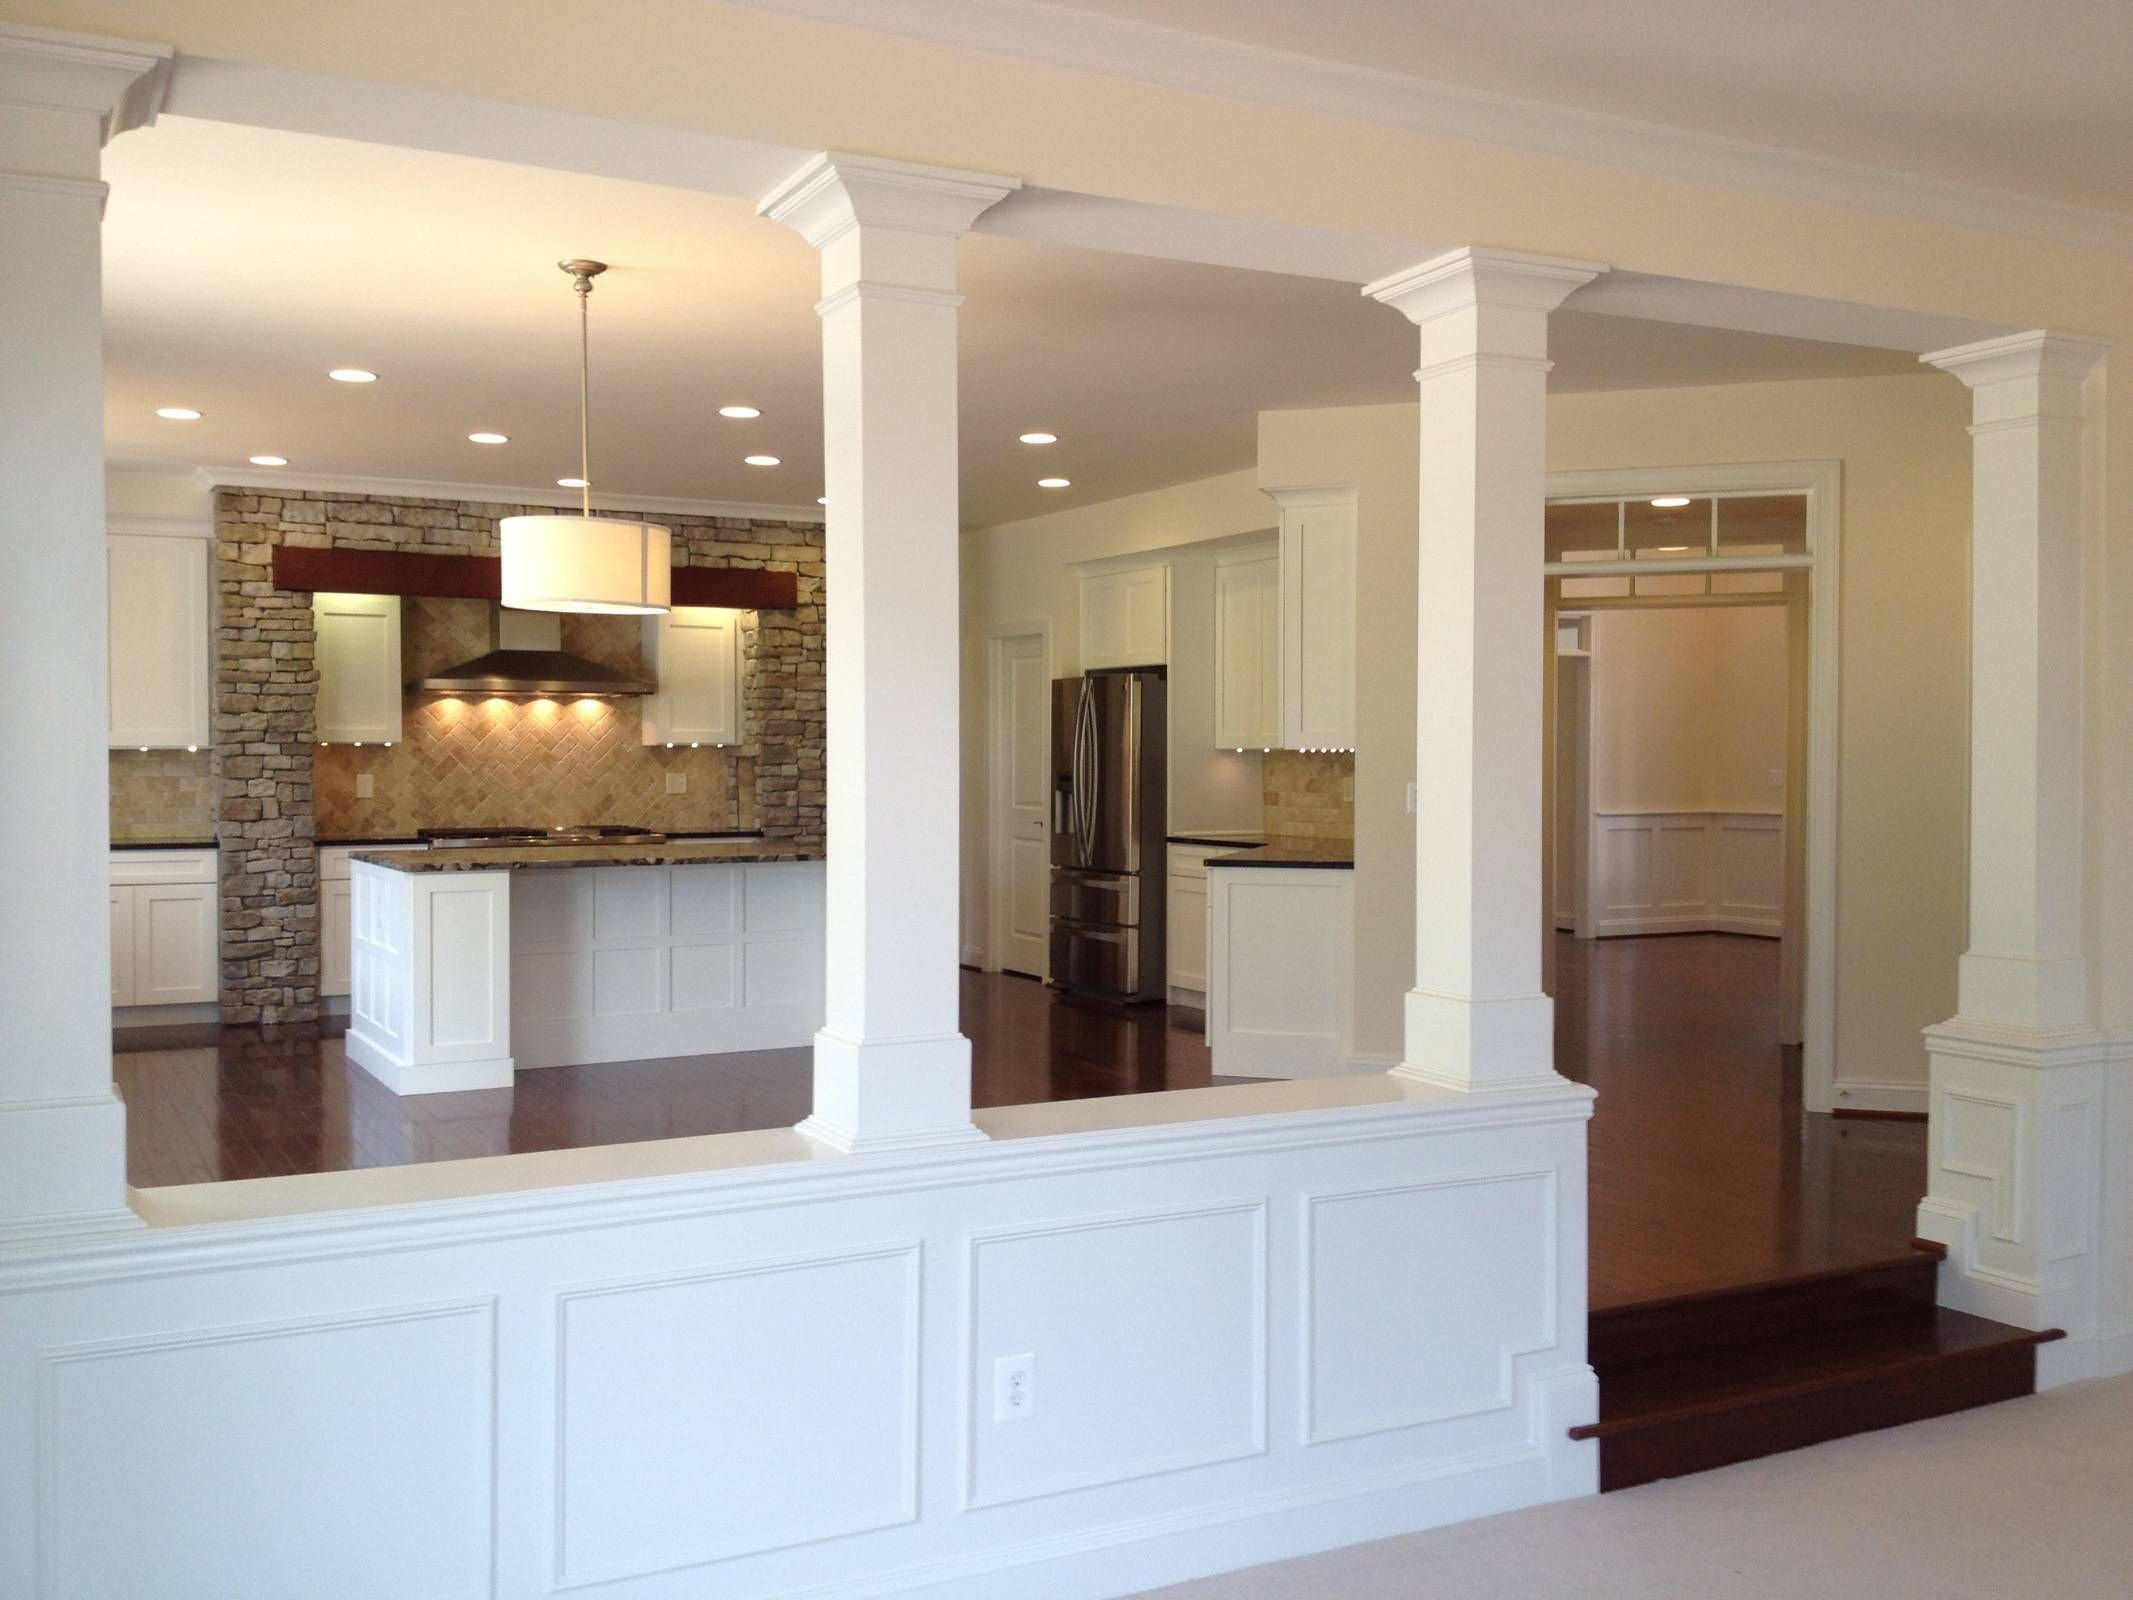 Affordable Half Wall With Column And Basement Columns Design And Half Wall Ideas Sunken Living Room Living Room Remodel Half Wall Room Divider